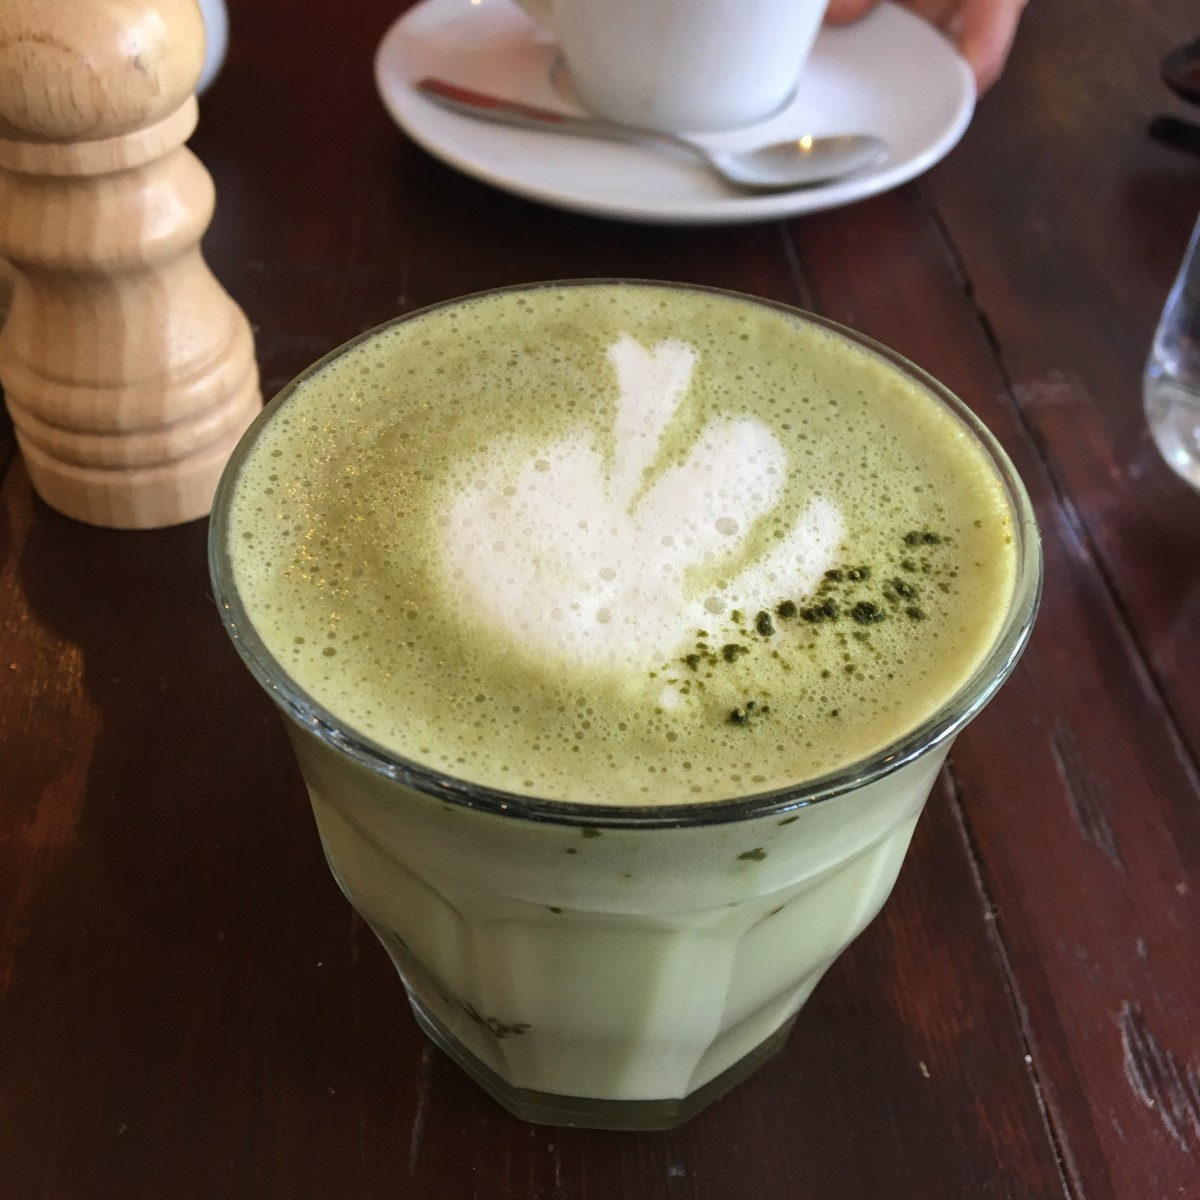 A delicious matcha tea I had recently, made with coconut milk.